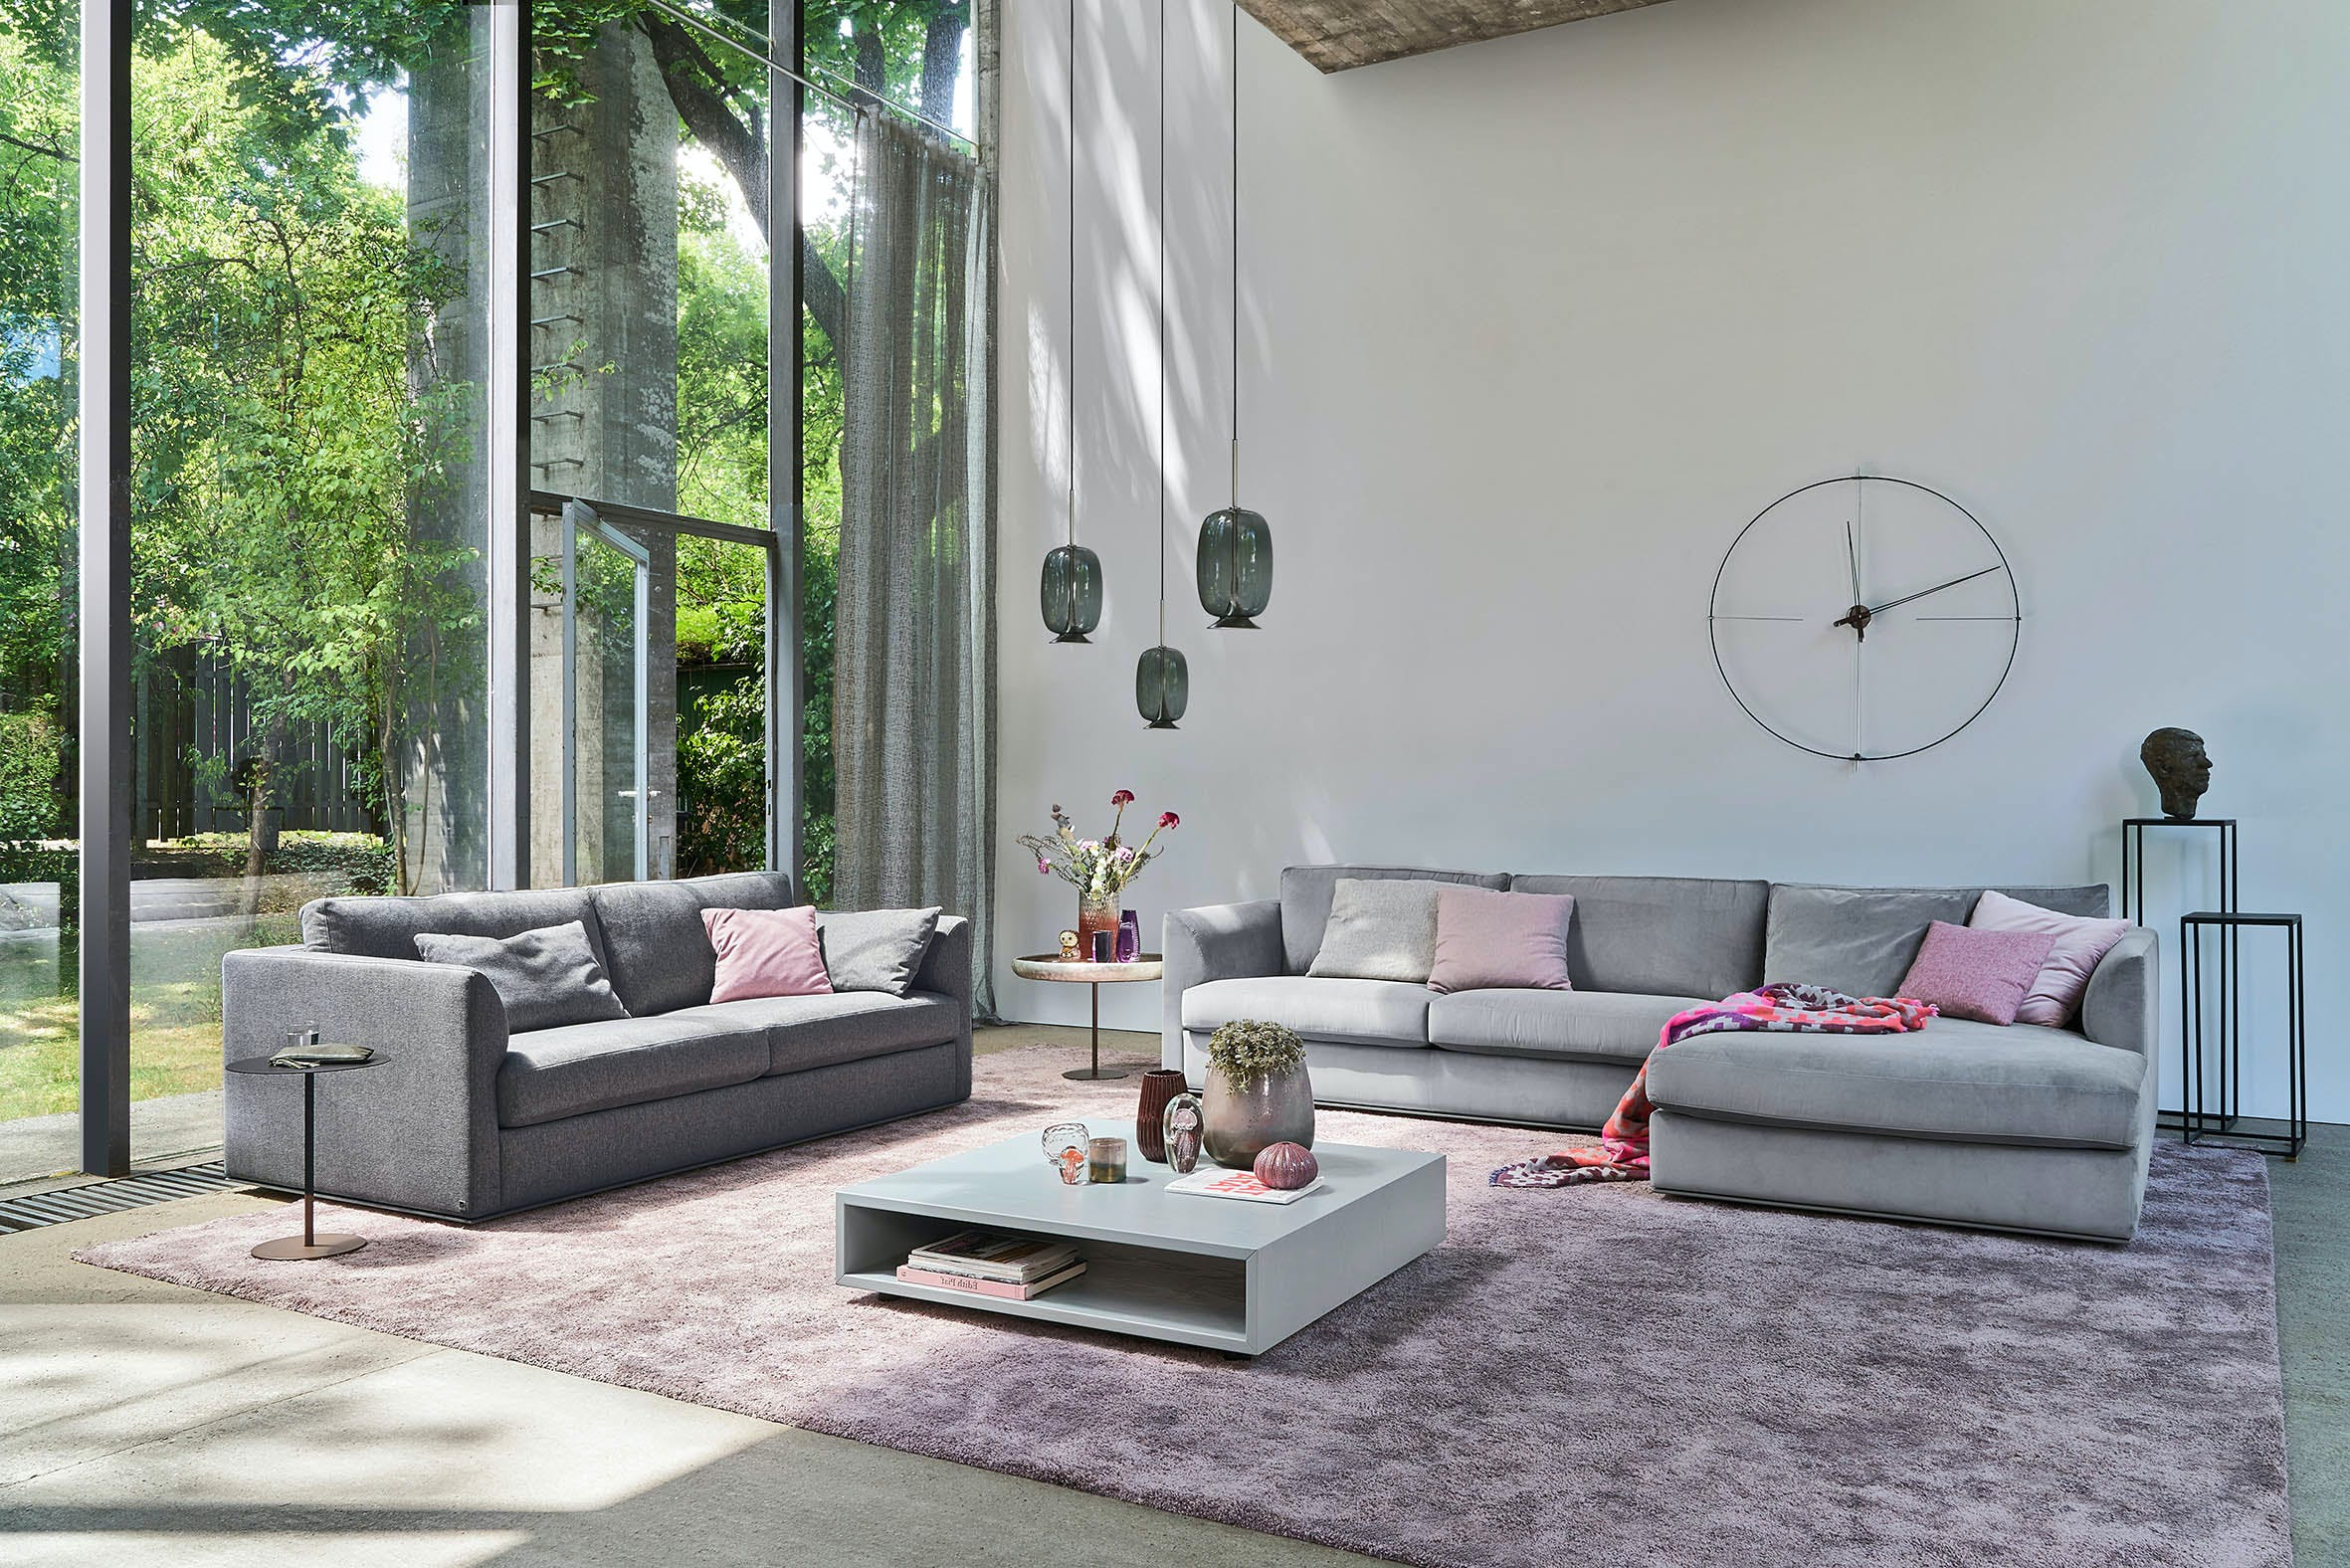 Jab Anstoetz Inspiration Modular Sofa Group Insitu Haute Living